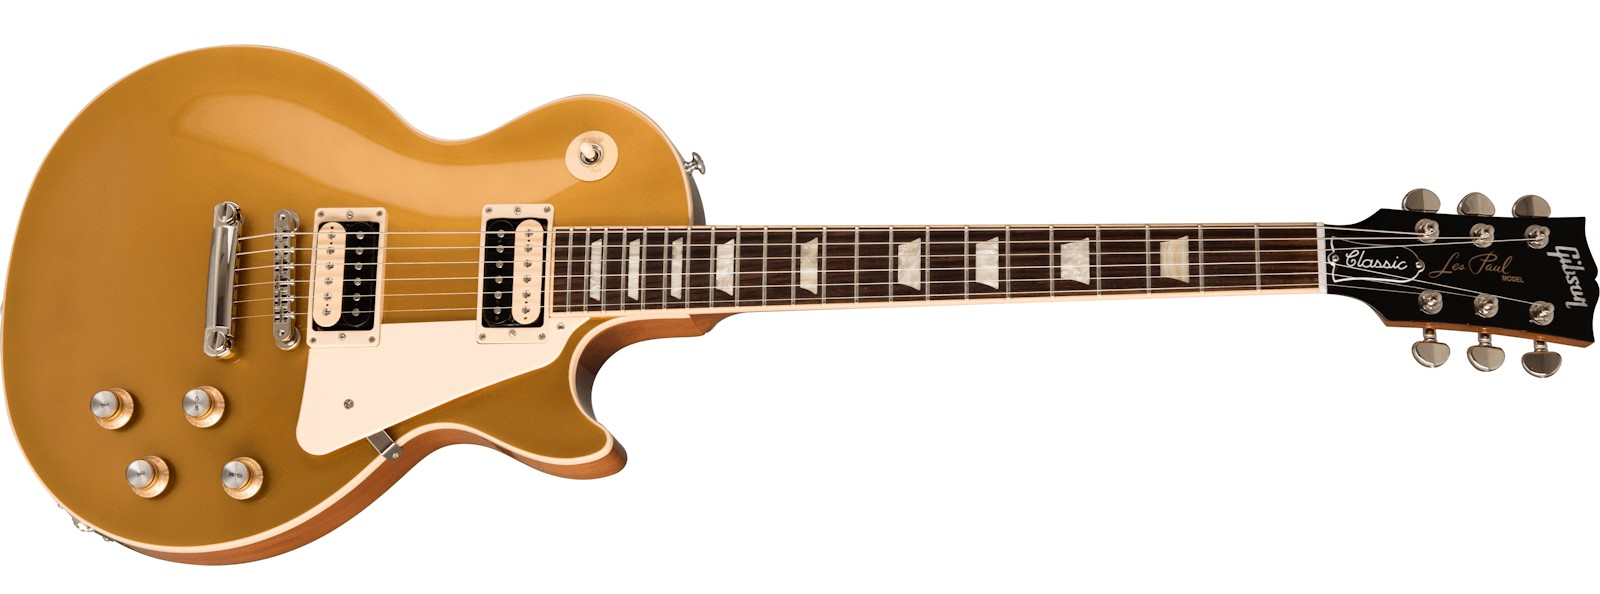 Gibson LP Classic red.jpg